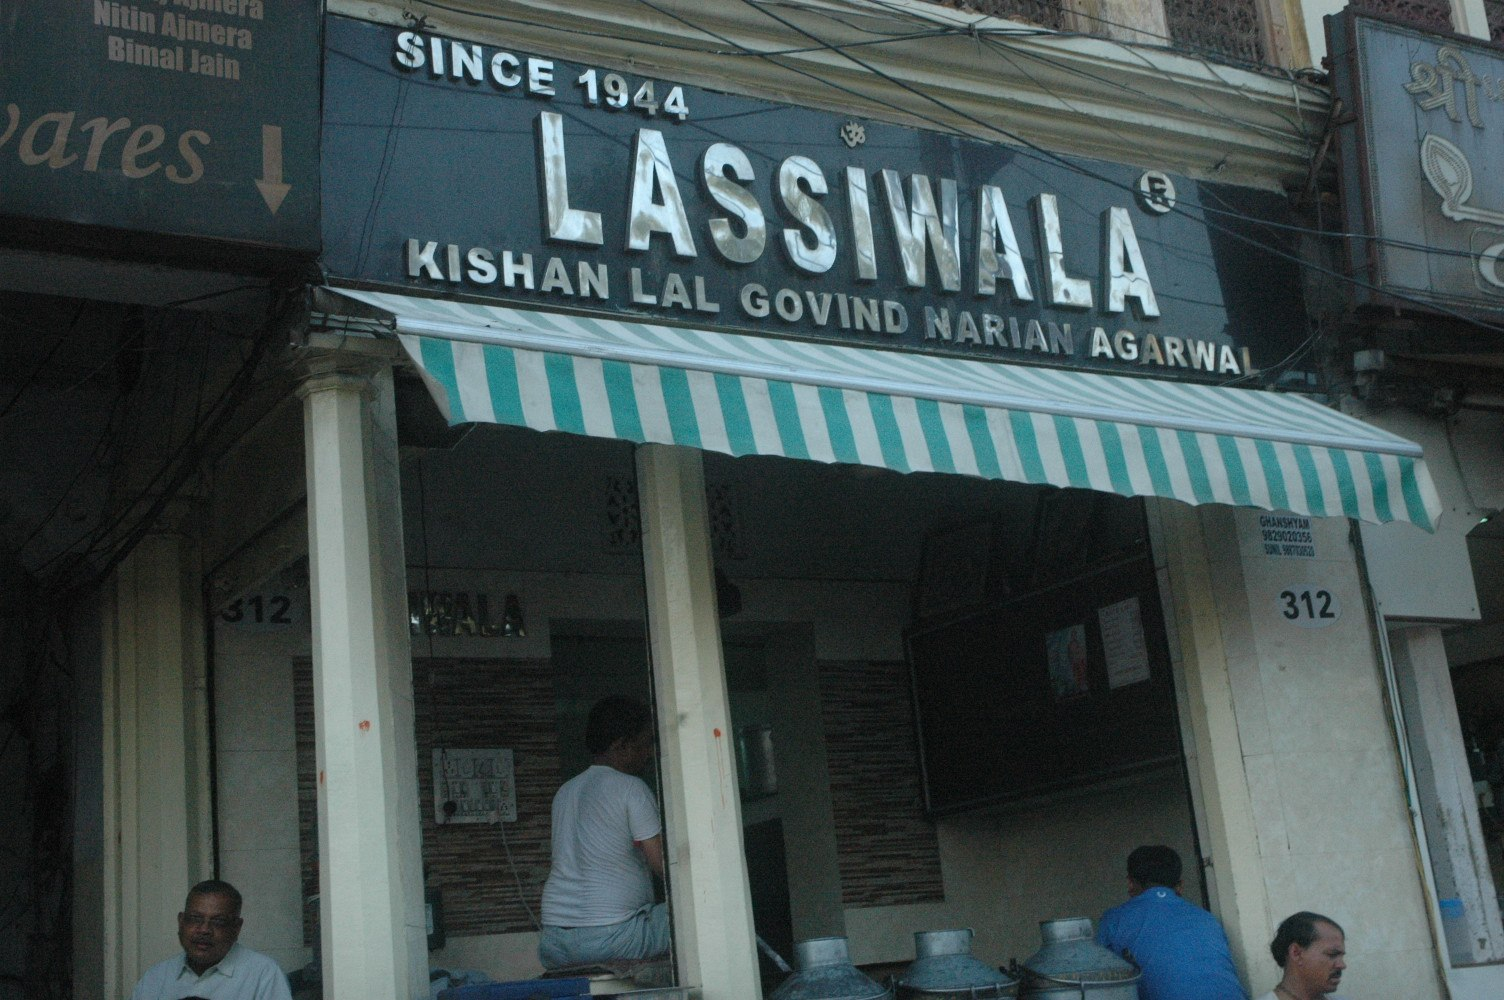 70 years and counting: Jaipur's famous M.I. Road Lassiwala